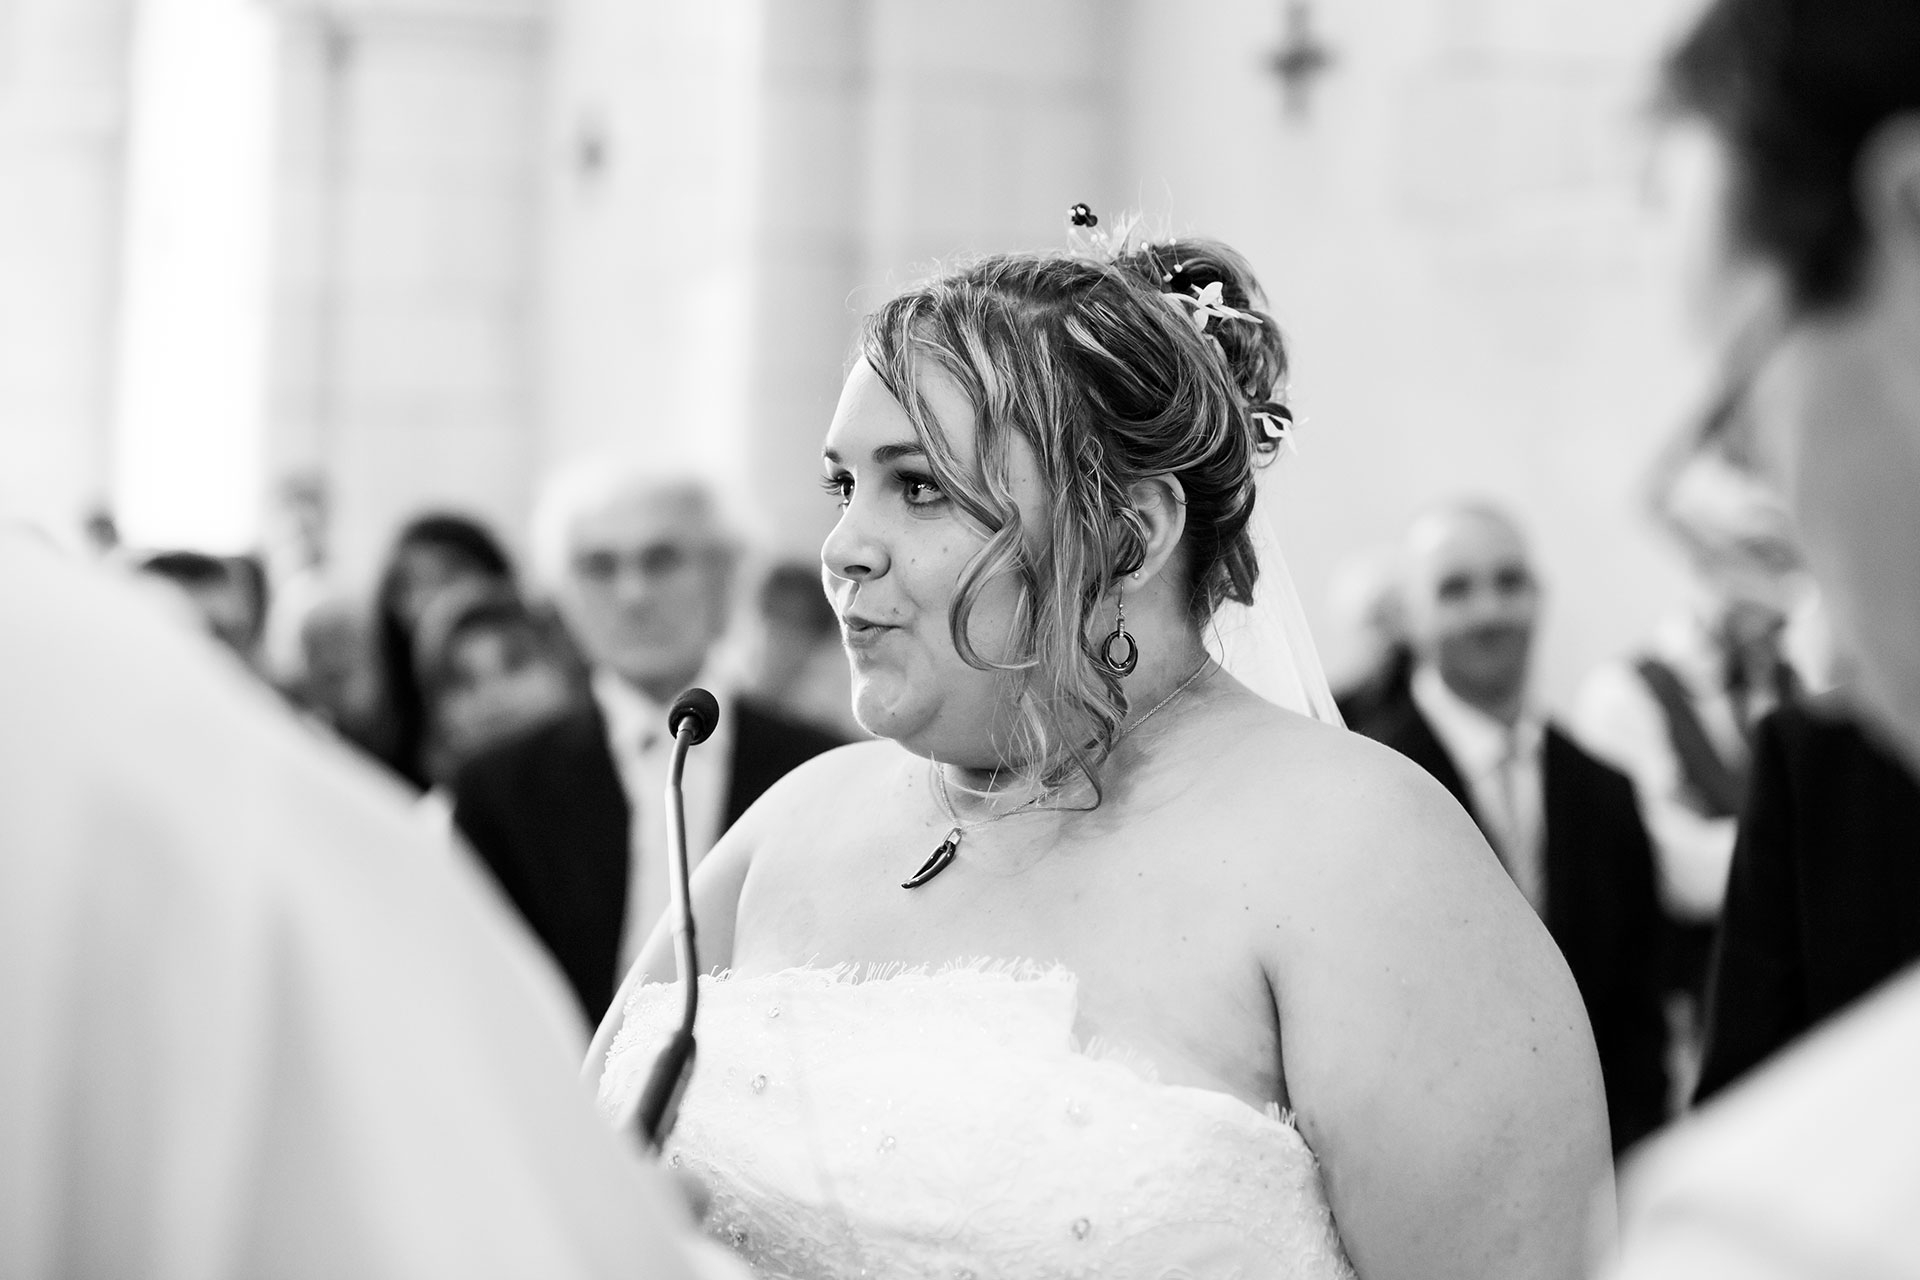 particuliers-evenements-mariages-oui-elodie&wilson-46